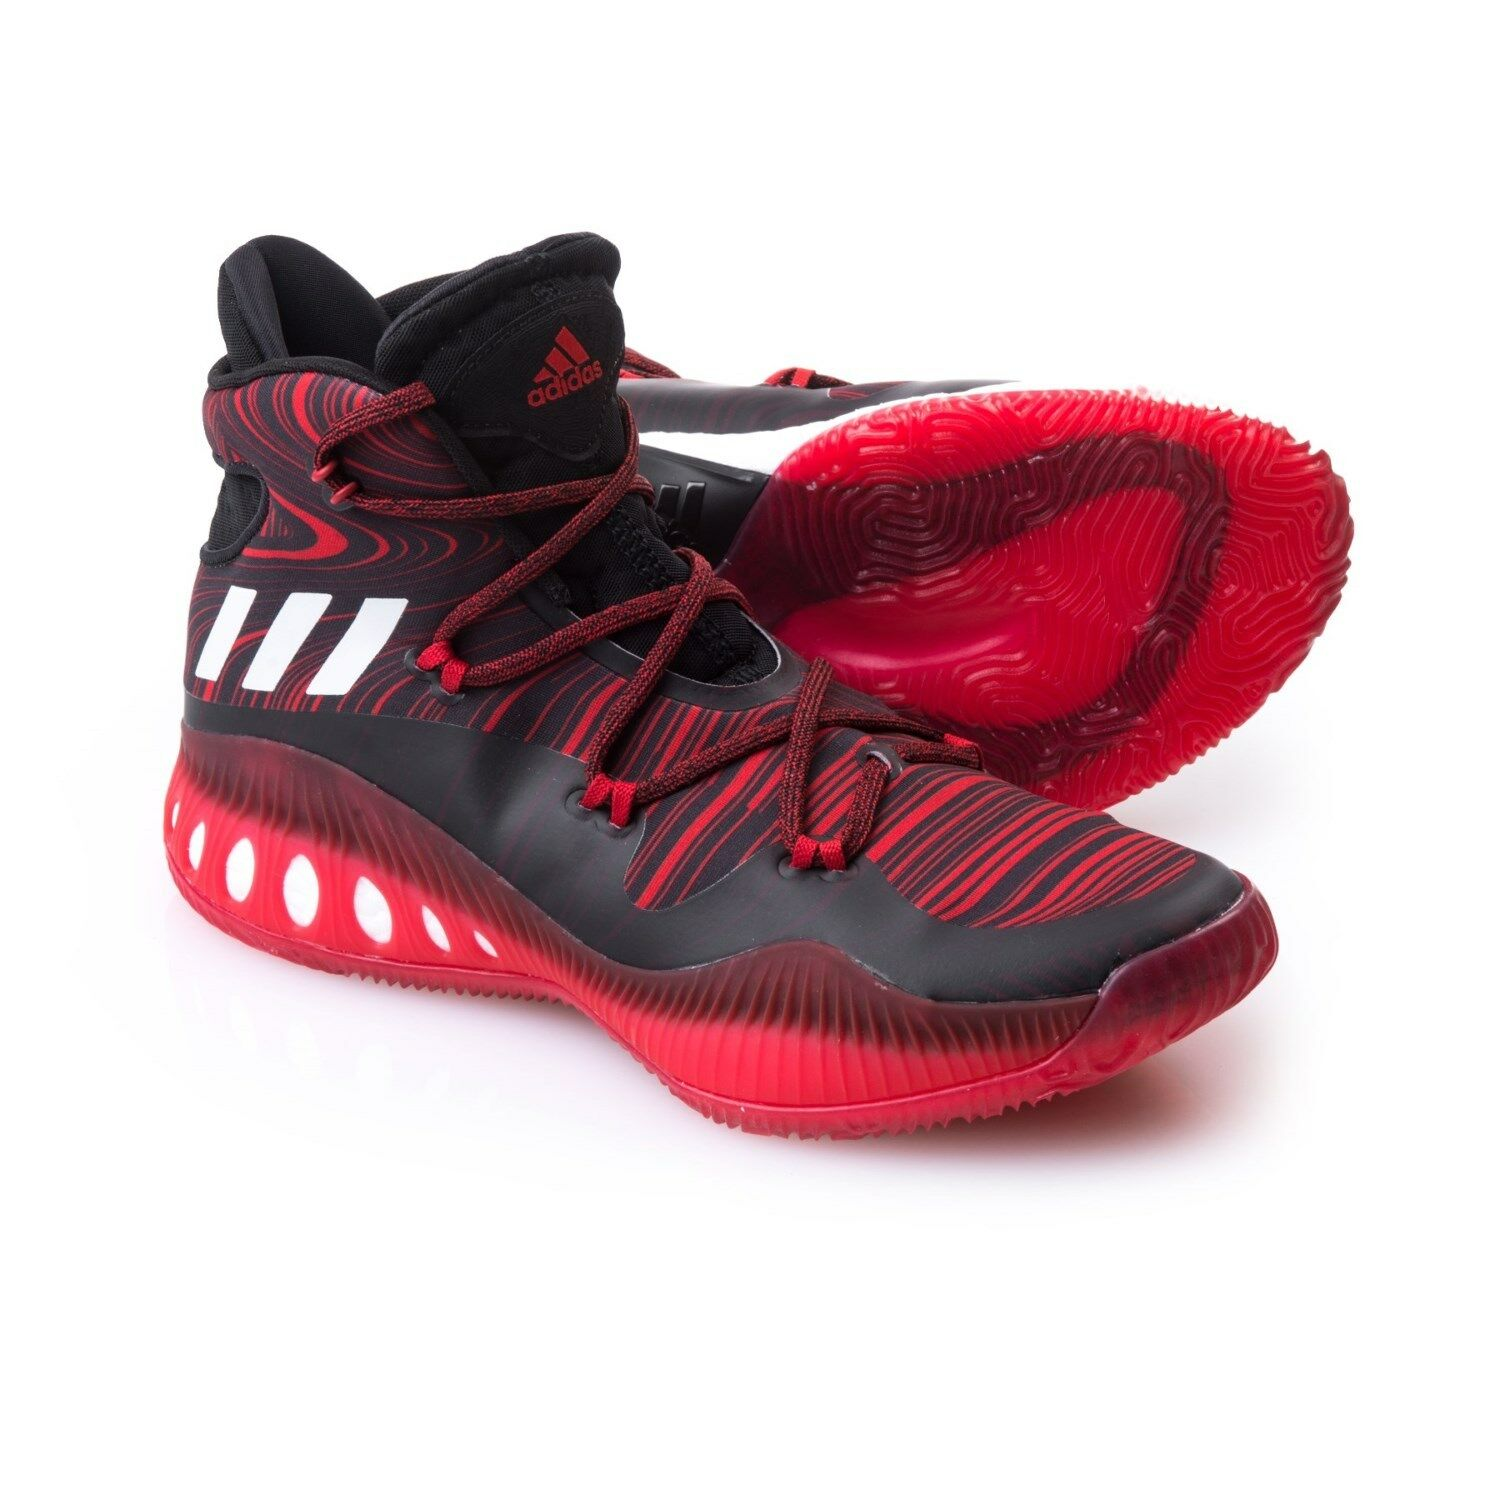 NWB~ EXPLOSIVE MEN'S ADIDAS SM CRAZY EXPLOSIVE NWB~ NBA SHOES. SIZES 17, 18, 19. B38863. SHARP 078bdc